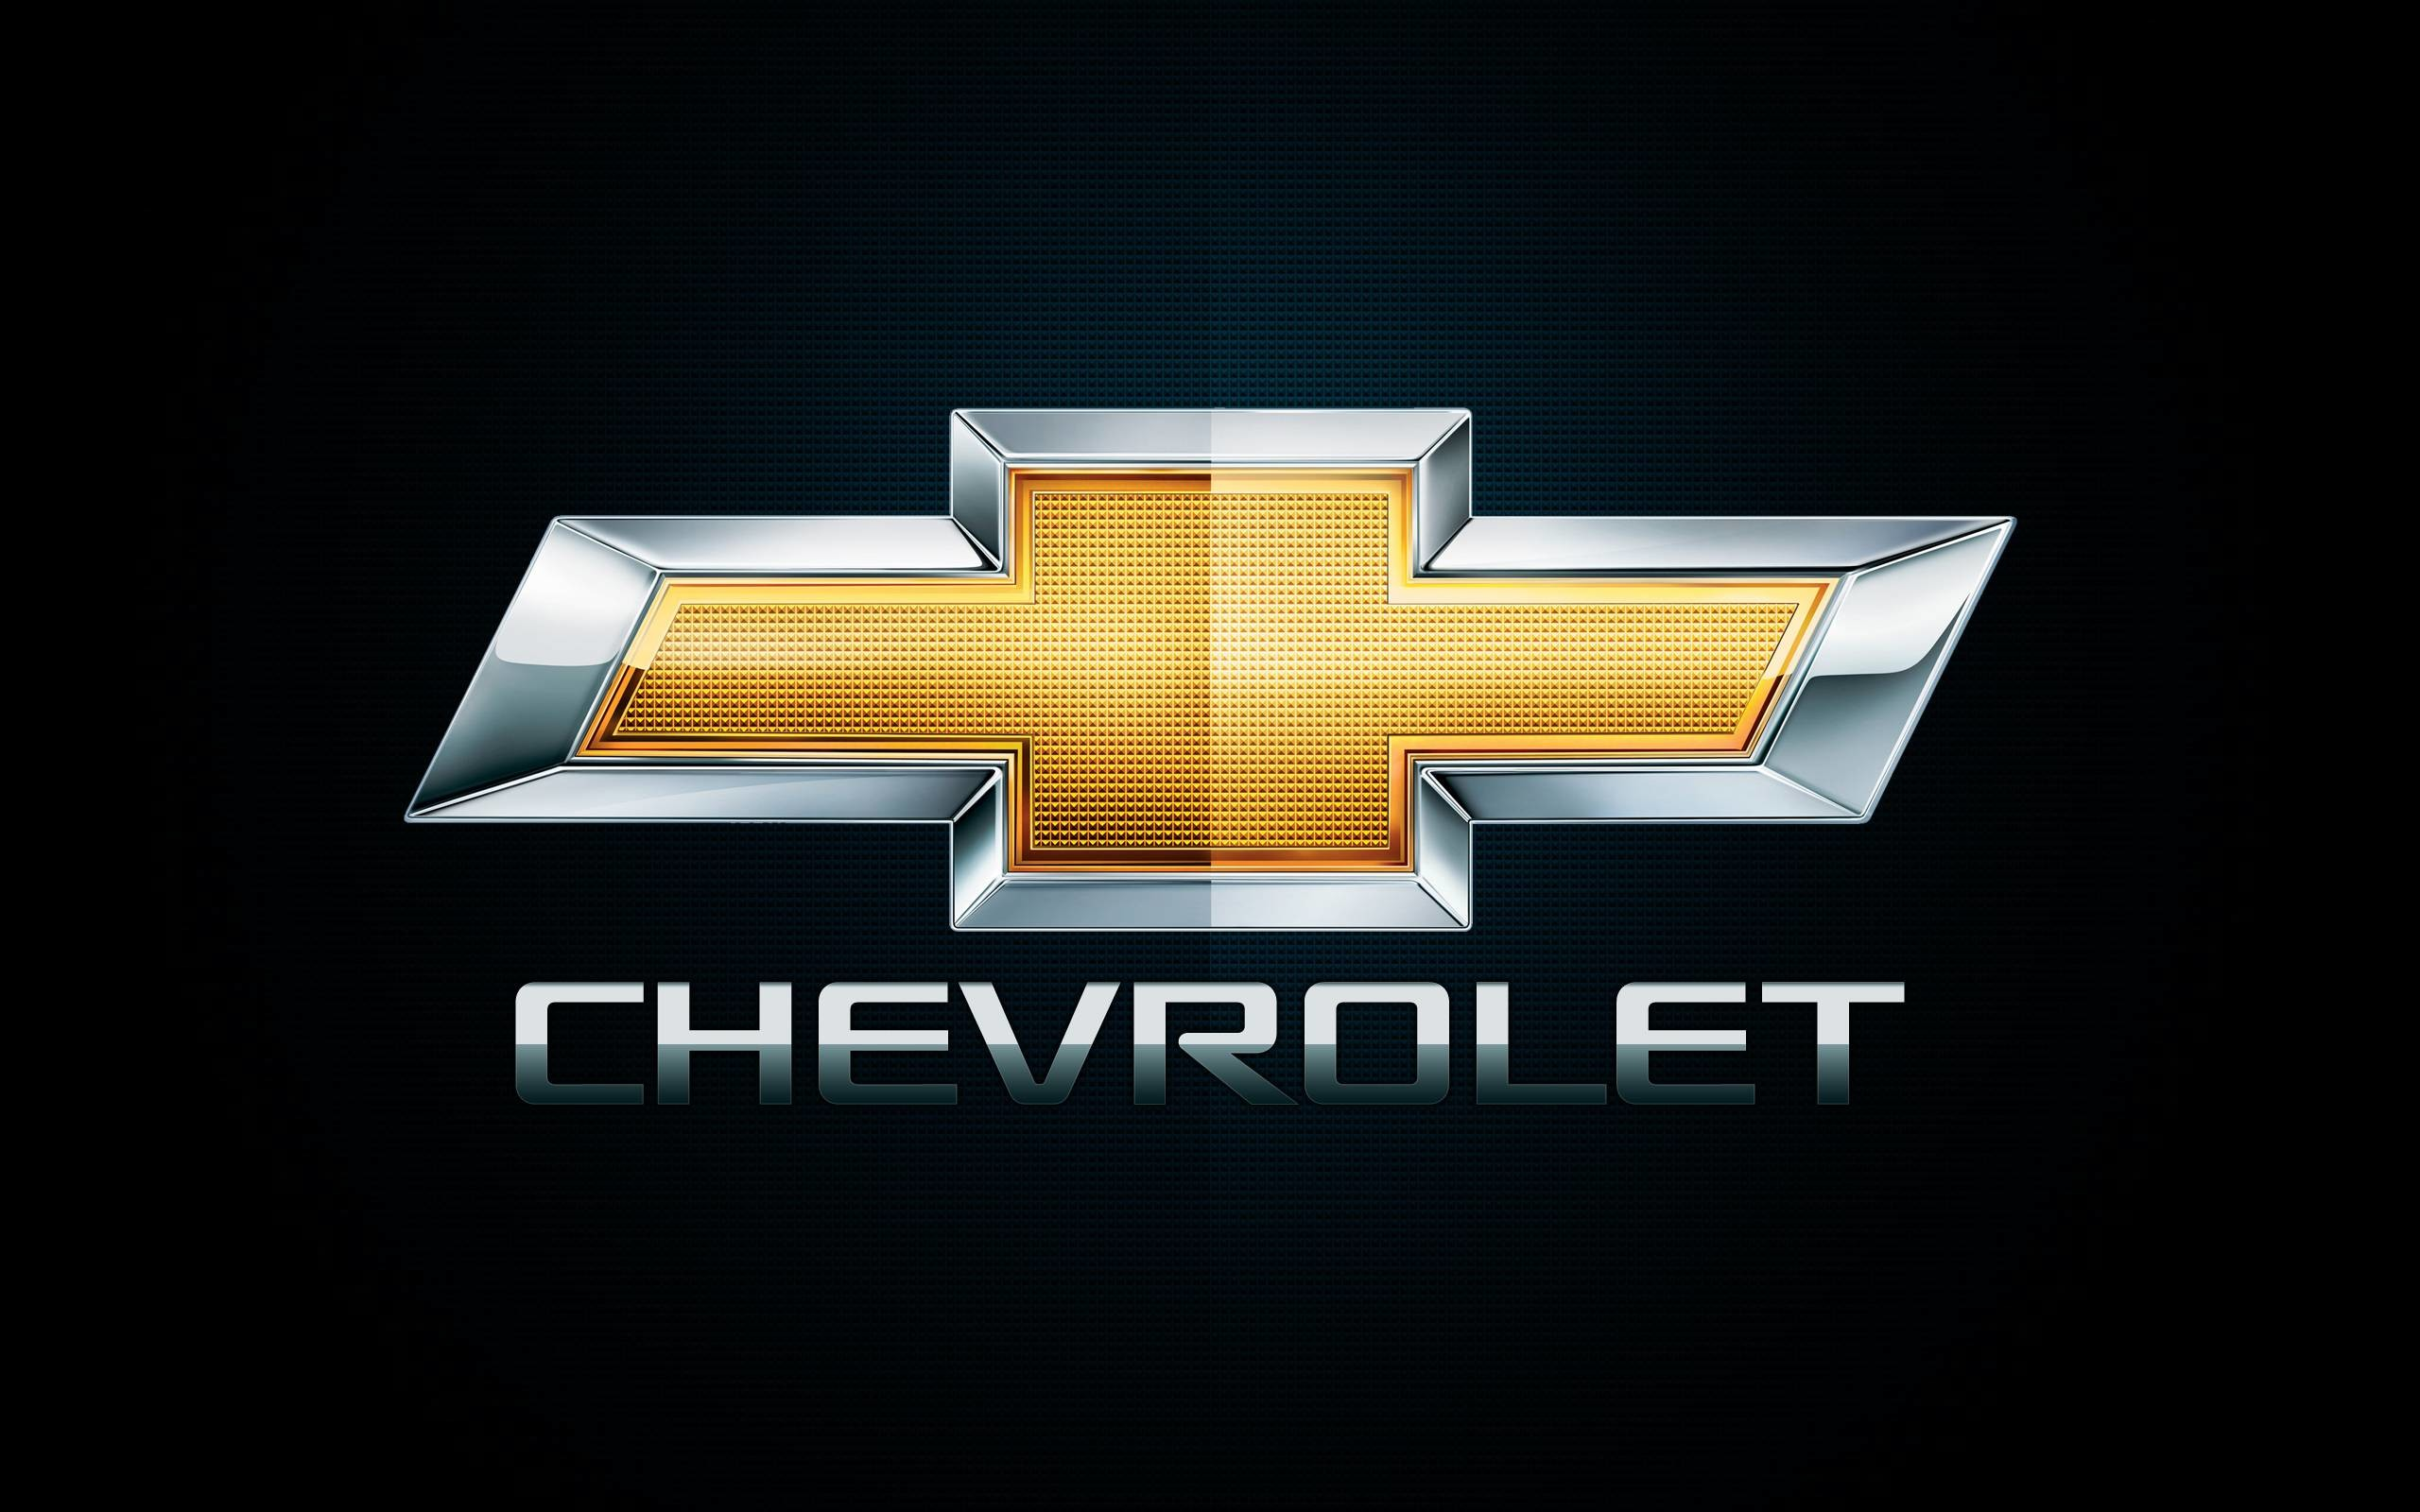 Chevy Logo Iphone Wallpaper 66 Images 1968 Chevrolet Camaro Symbol 2560x1600 Wallpapers Full Hd Search